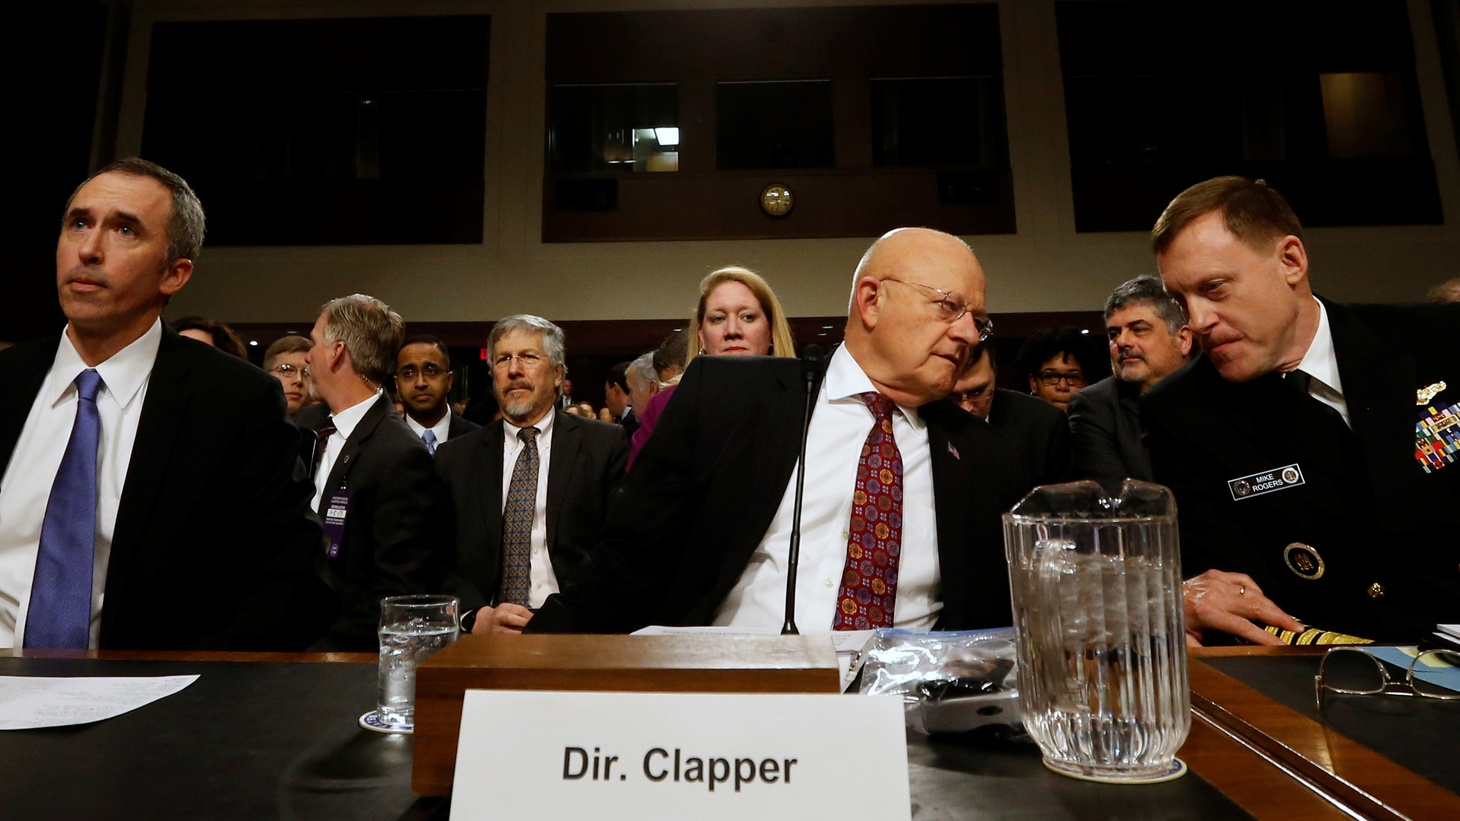 There are 17 intelligence agencies. We examine what they all do, and find out what the rift with Donald Trump over their assessment of Russian hacking will mean for intelligence gathering in the future.